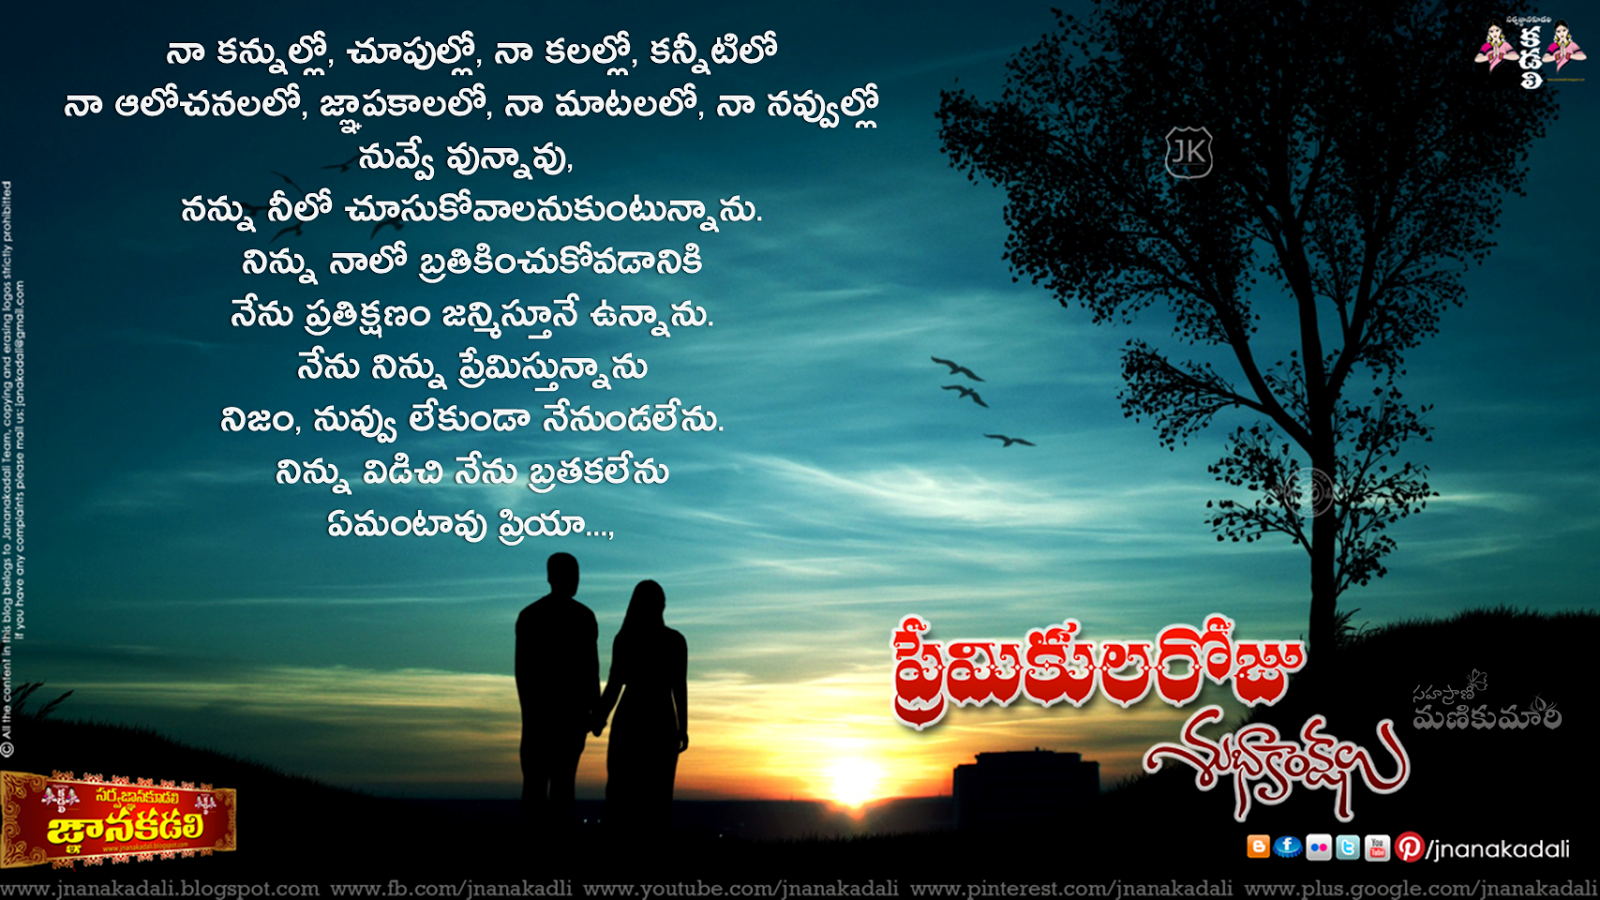 Telugu Valentine s Day 2015 Greetings JNANA KADALI.cOM ...